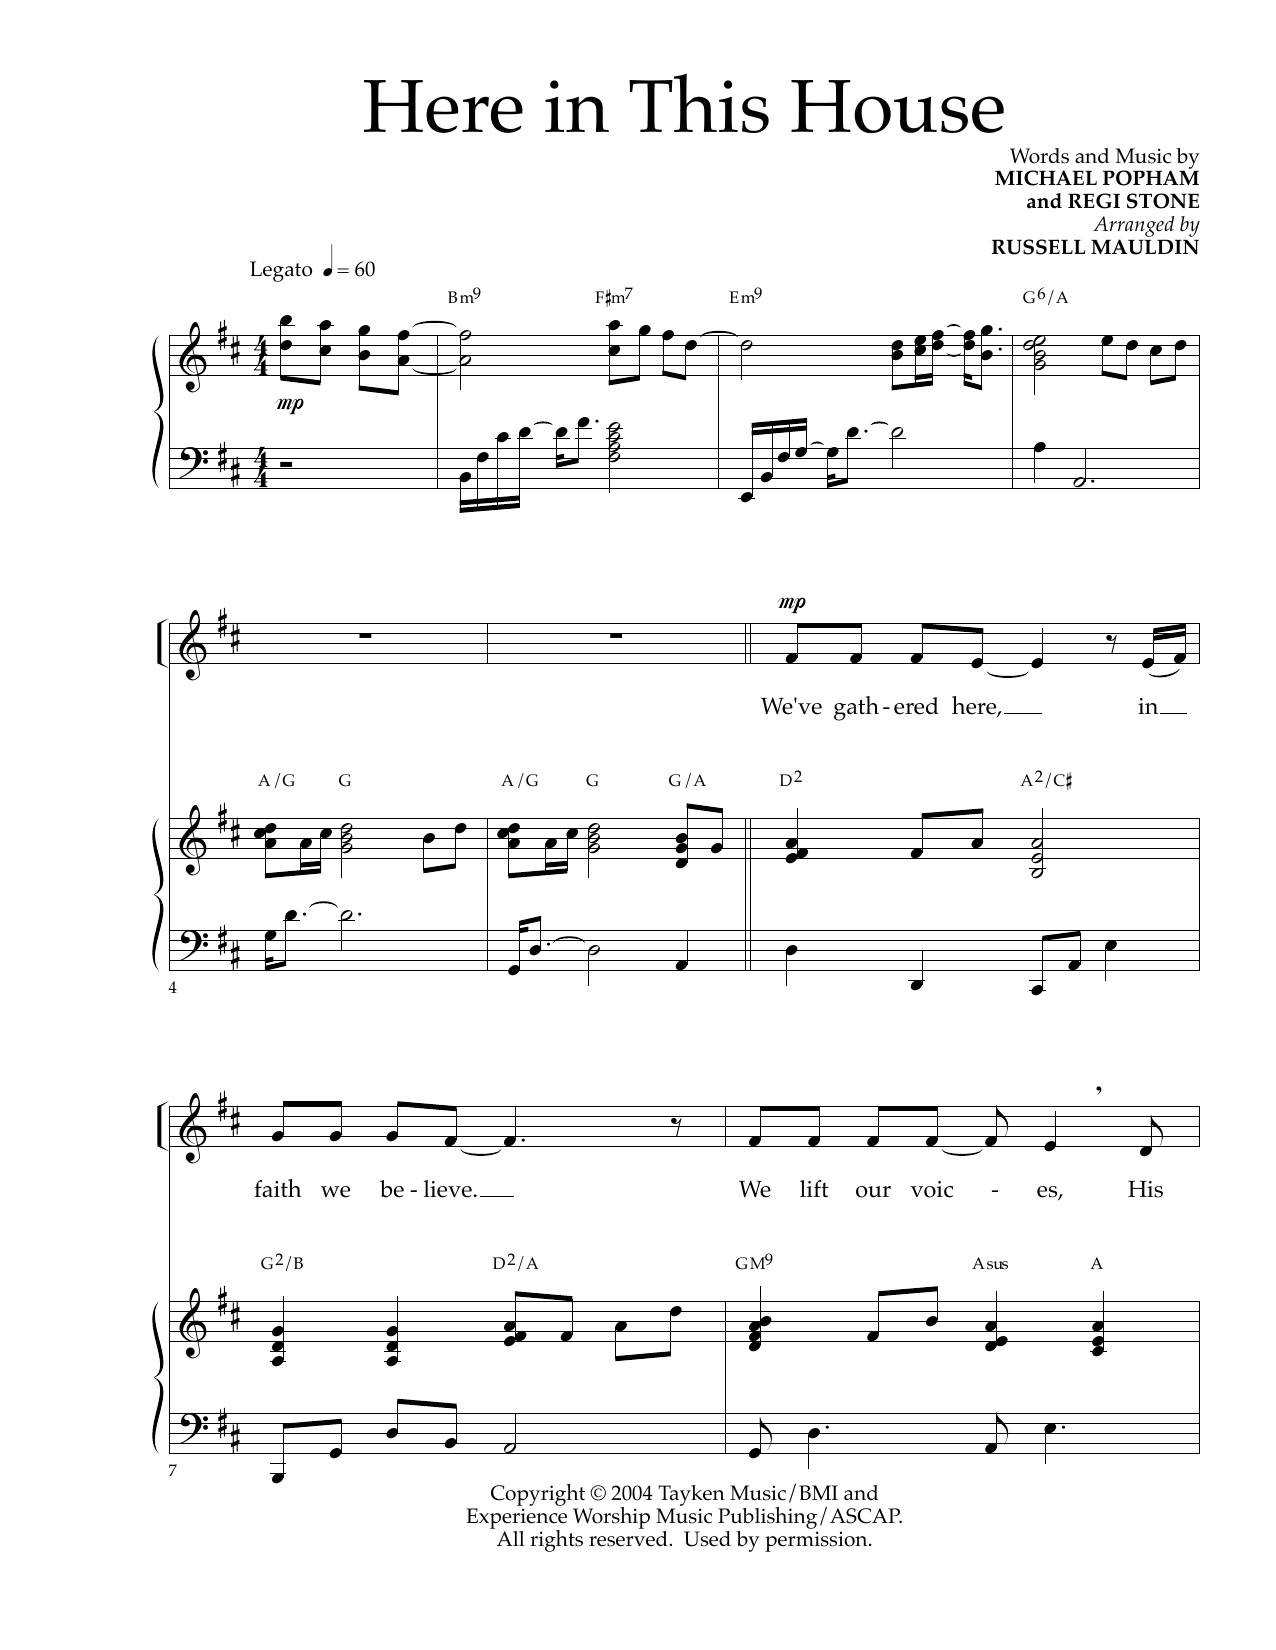 Michael Popham and Regi Stone Here In This House (arr. Russell Mauldin) sheet music notes and chords. Download Printable PDF.